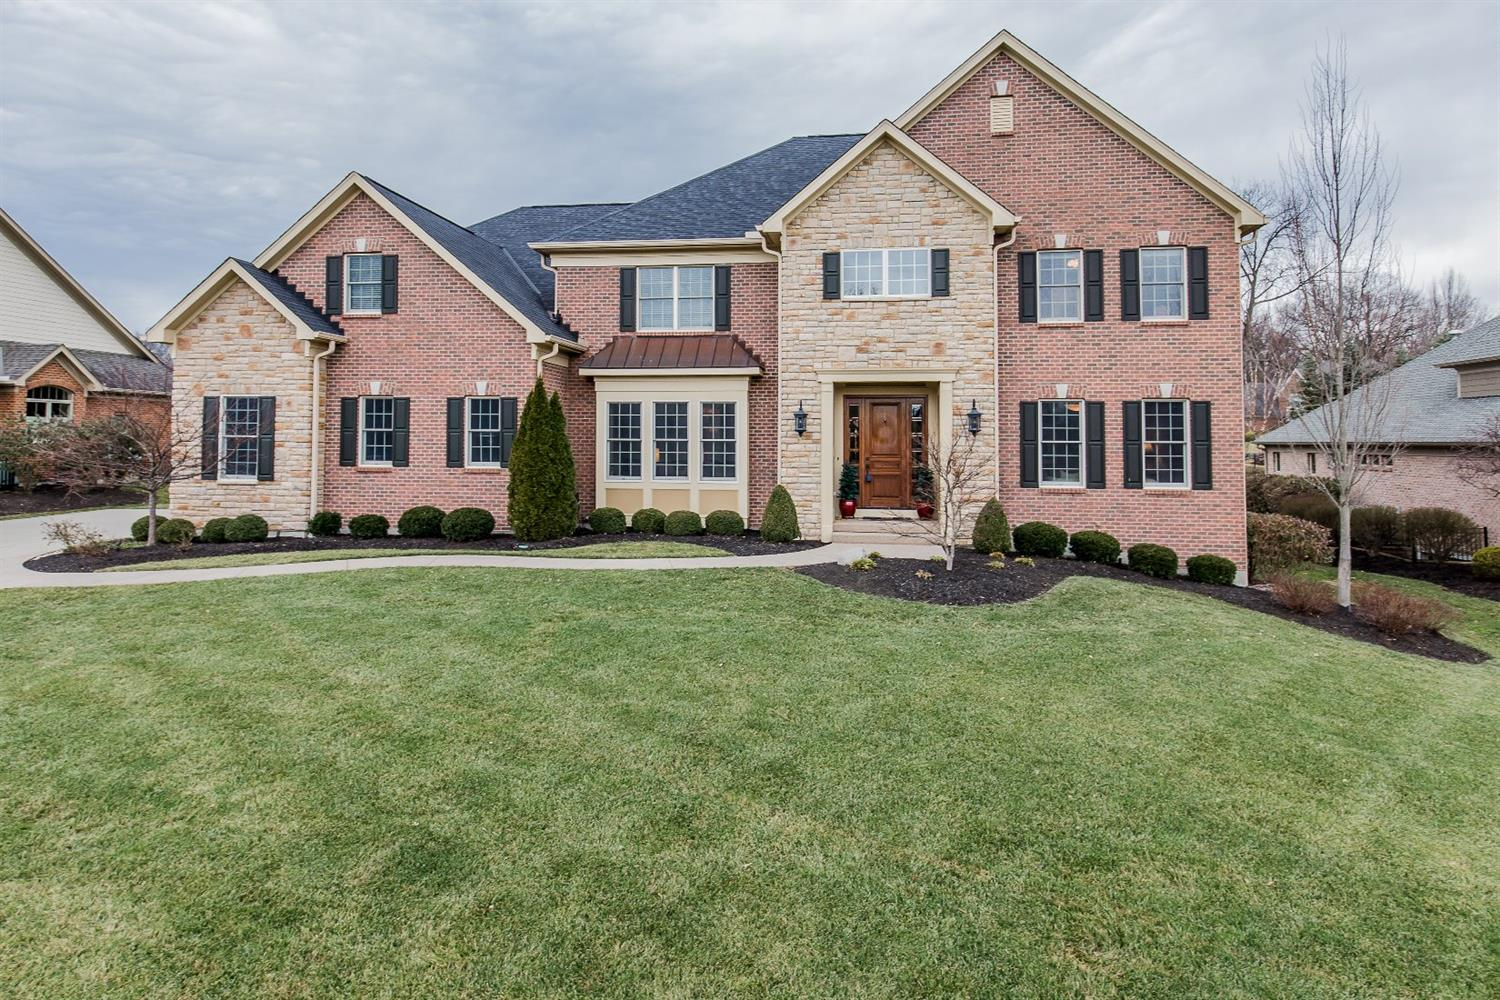 8125 Deer Path Ln Sycamore Twp., OH